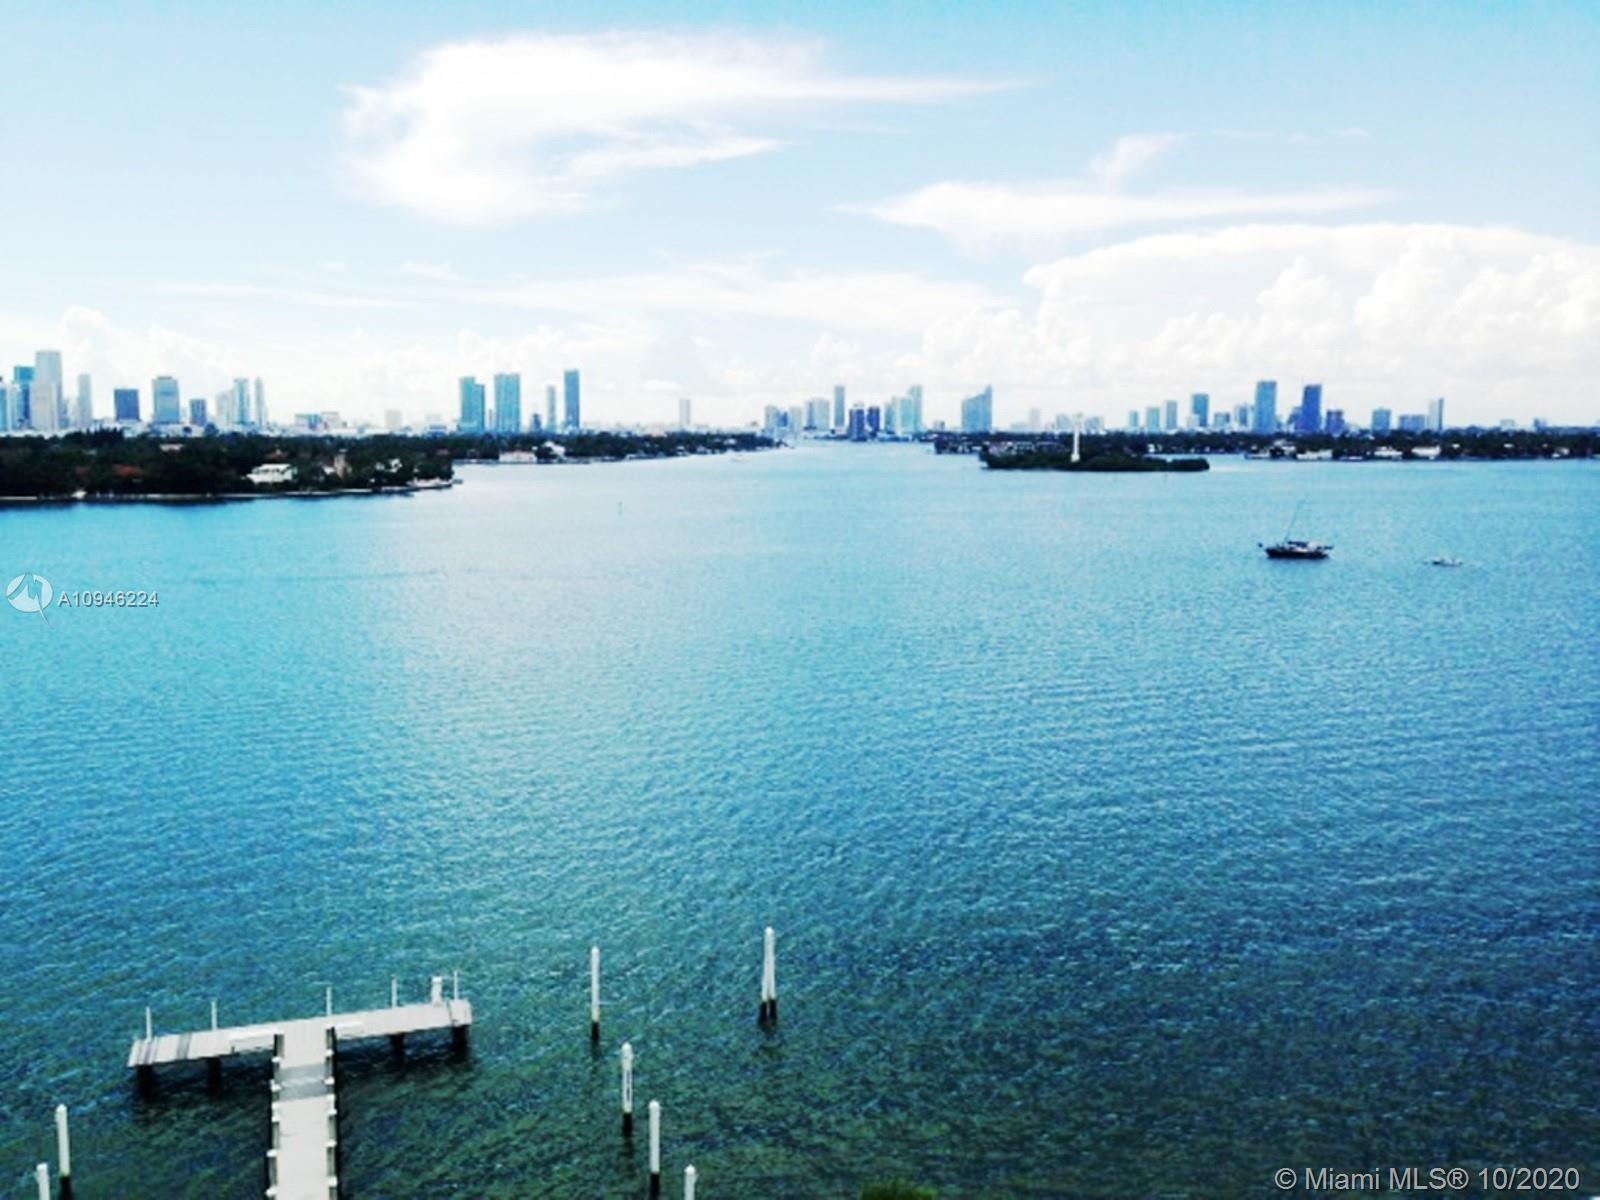 Mirador South #1018 - 1000 West Ave #1018, Miami Beach, FL 33139